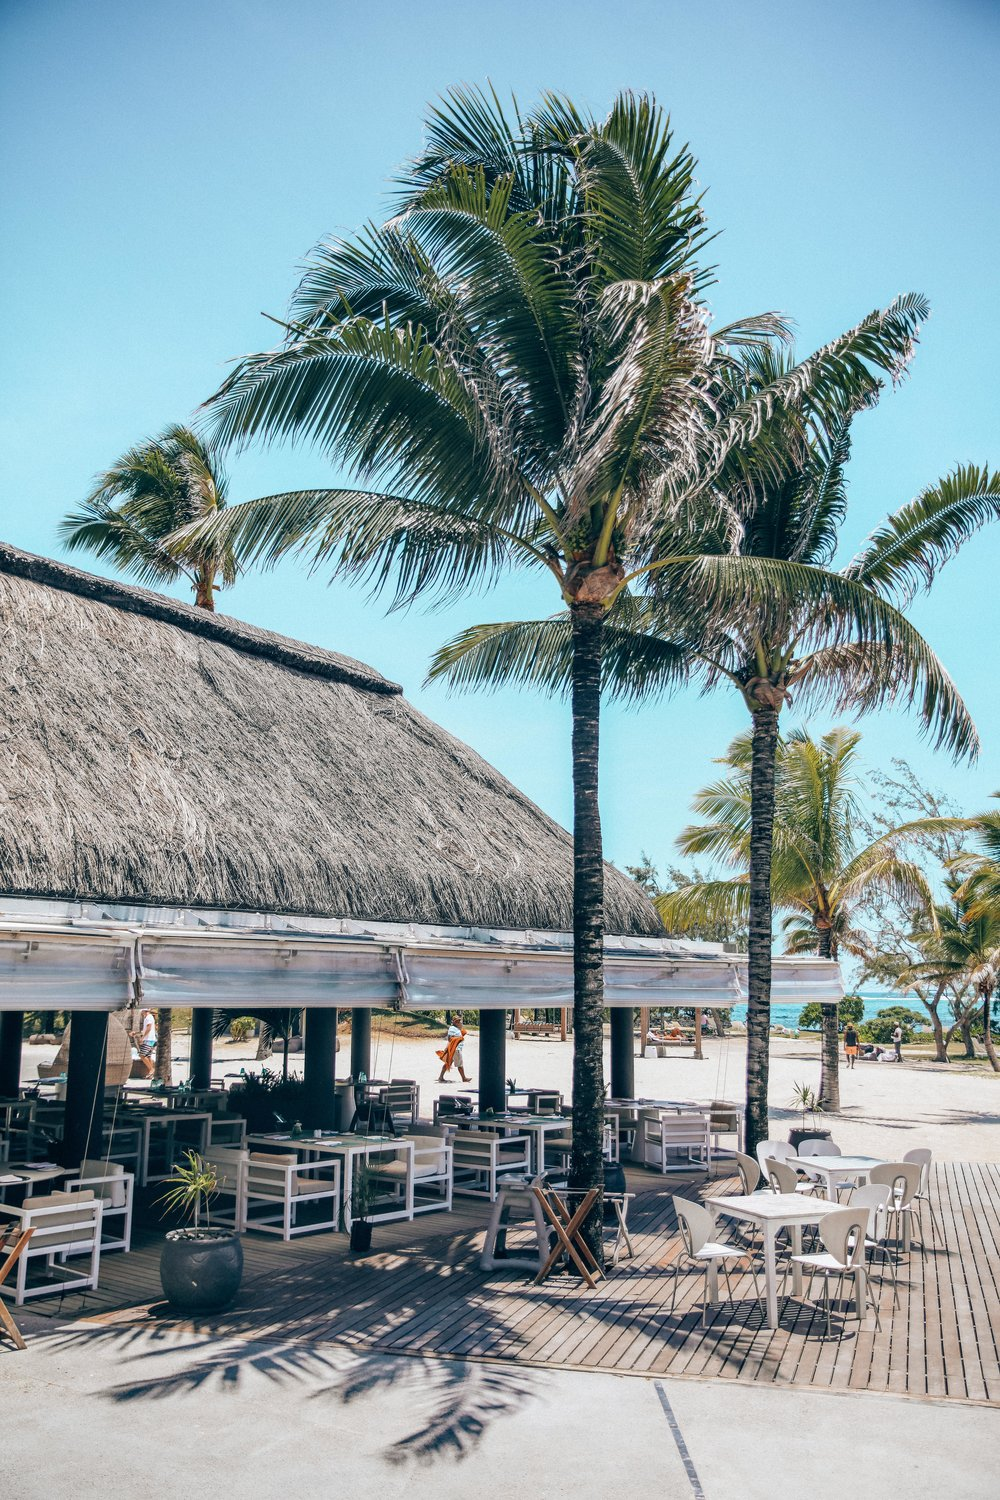 TIDES RESTURANT - BAR AND BEACH FOOD